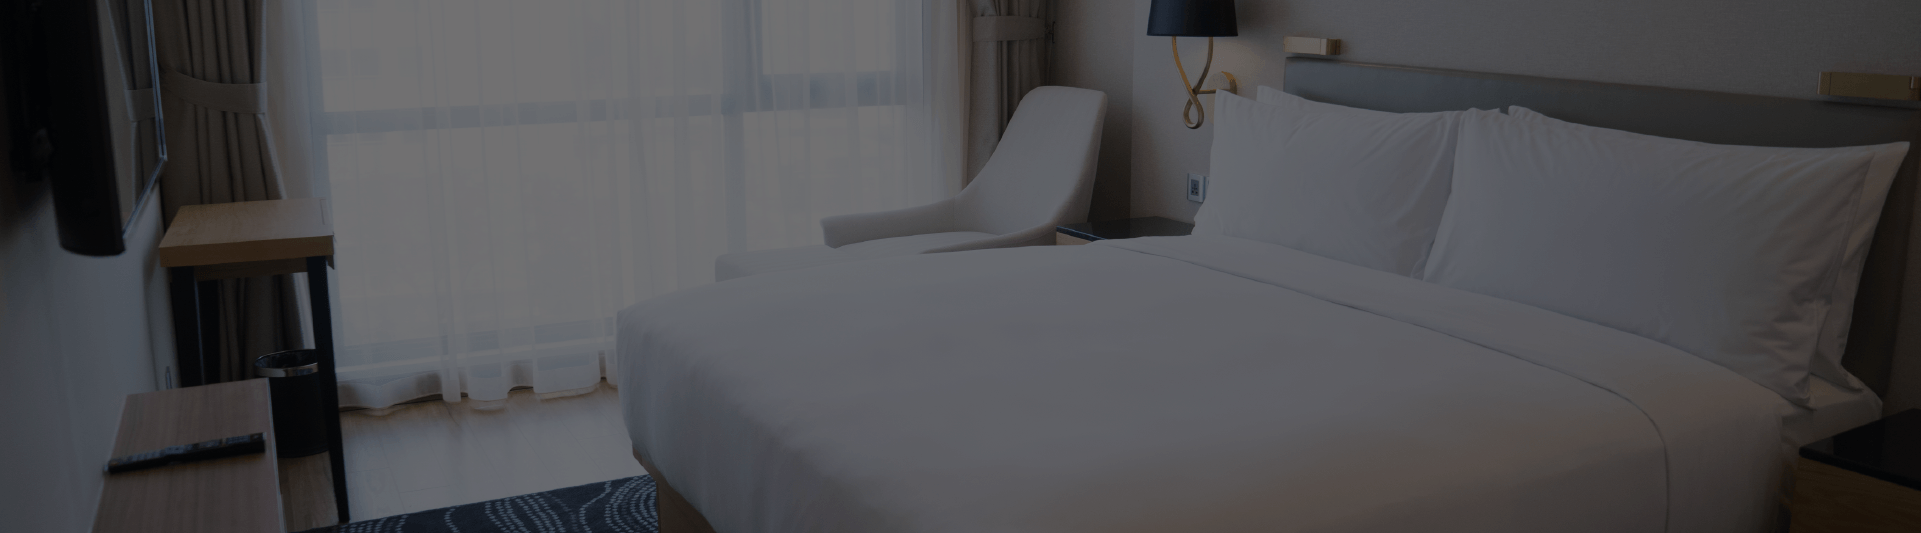 Hotel Housekeeping Software and Housekeeping app for hotels